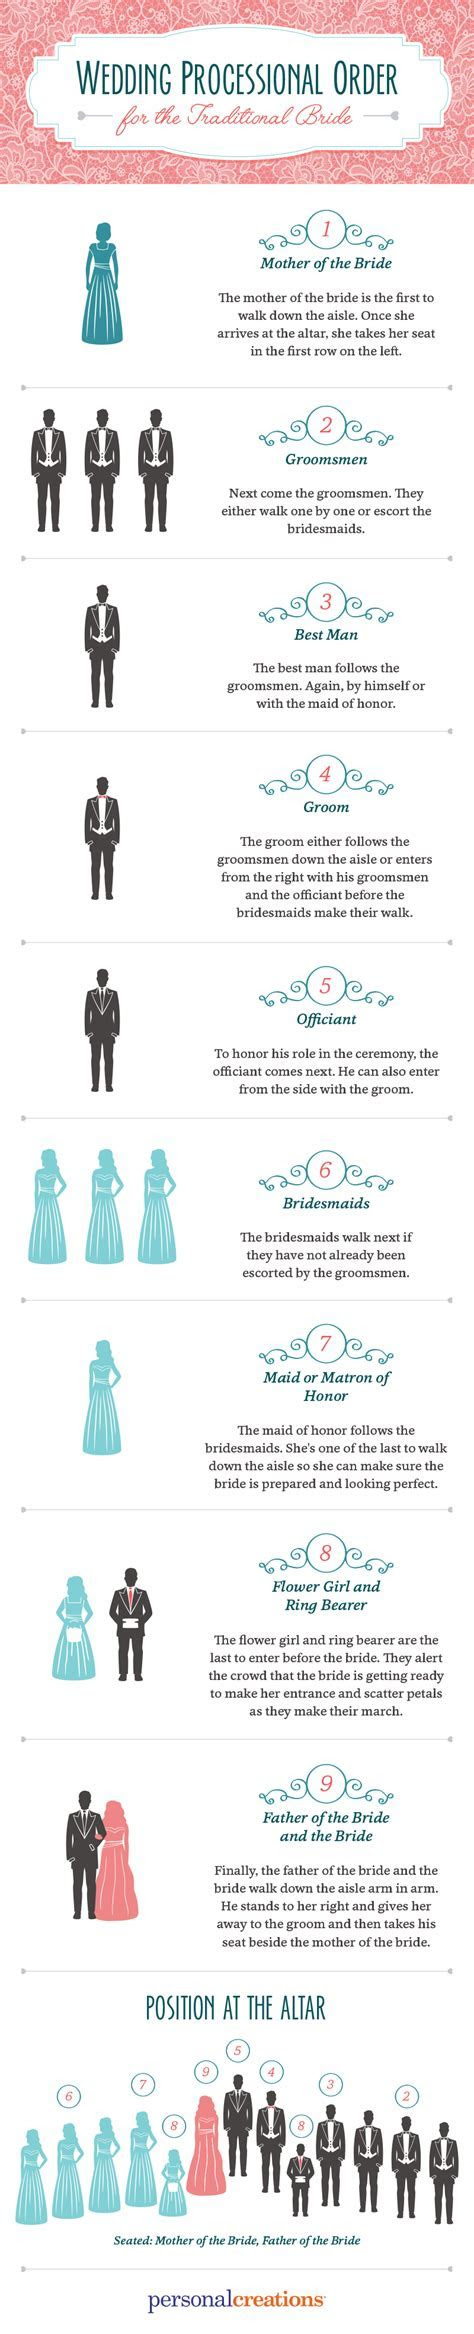 Fun Wedding Processional Infographic   WeddingLovely Blog